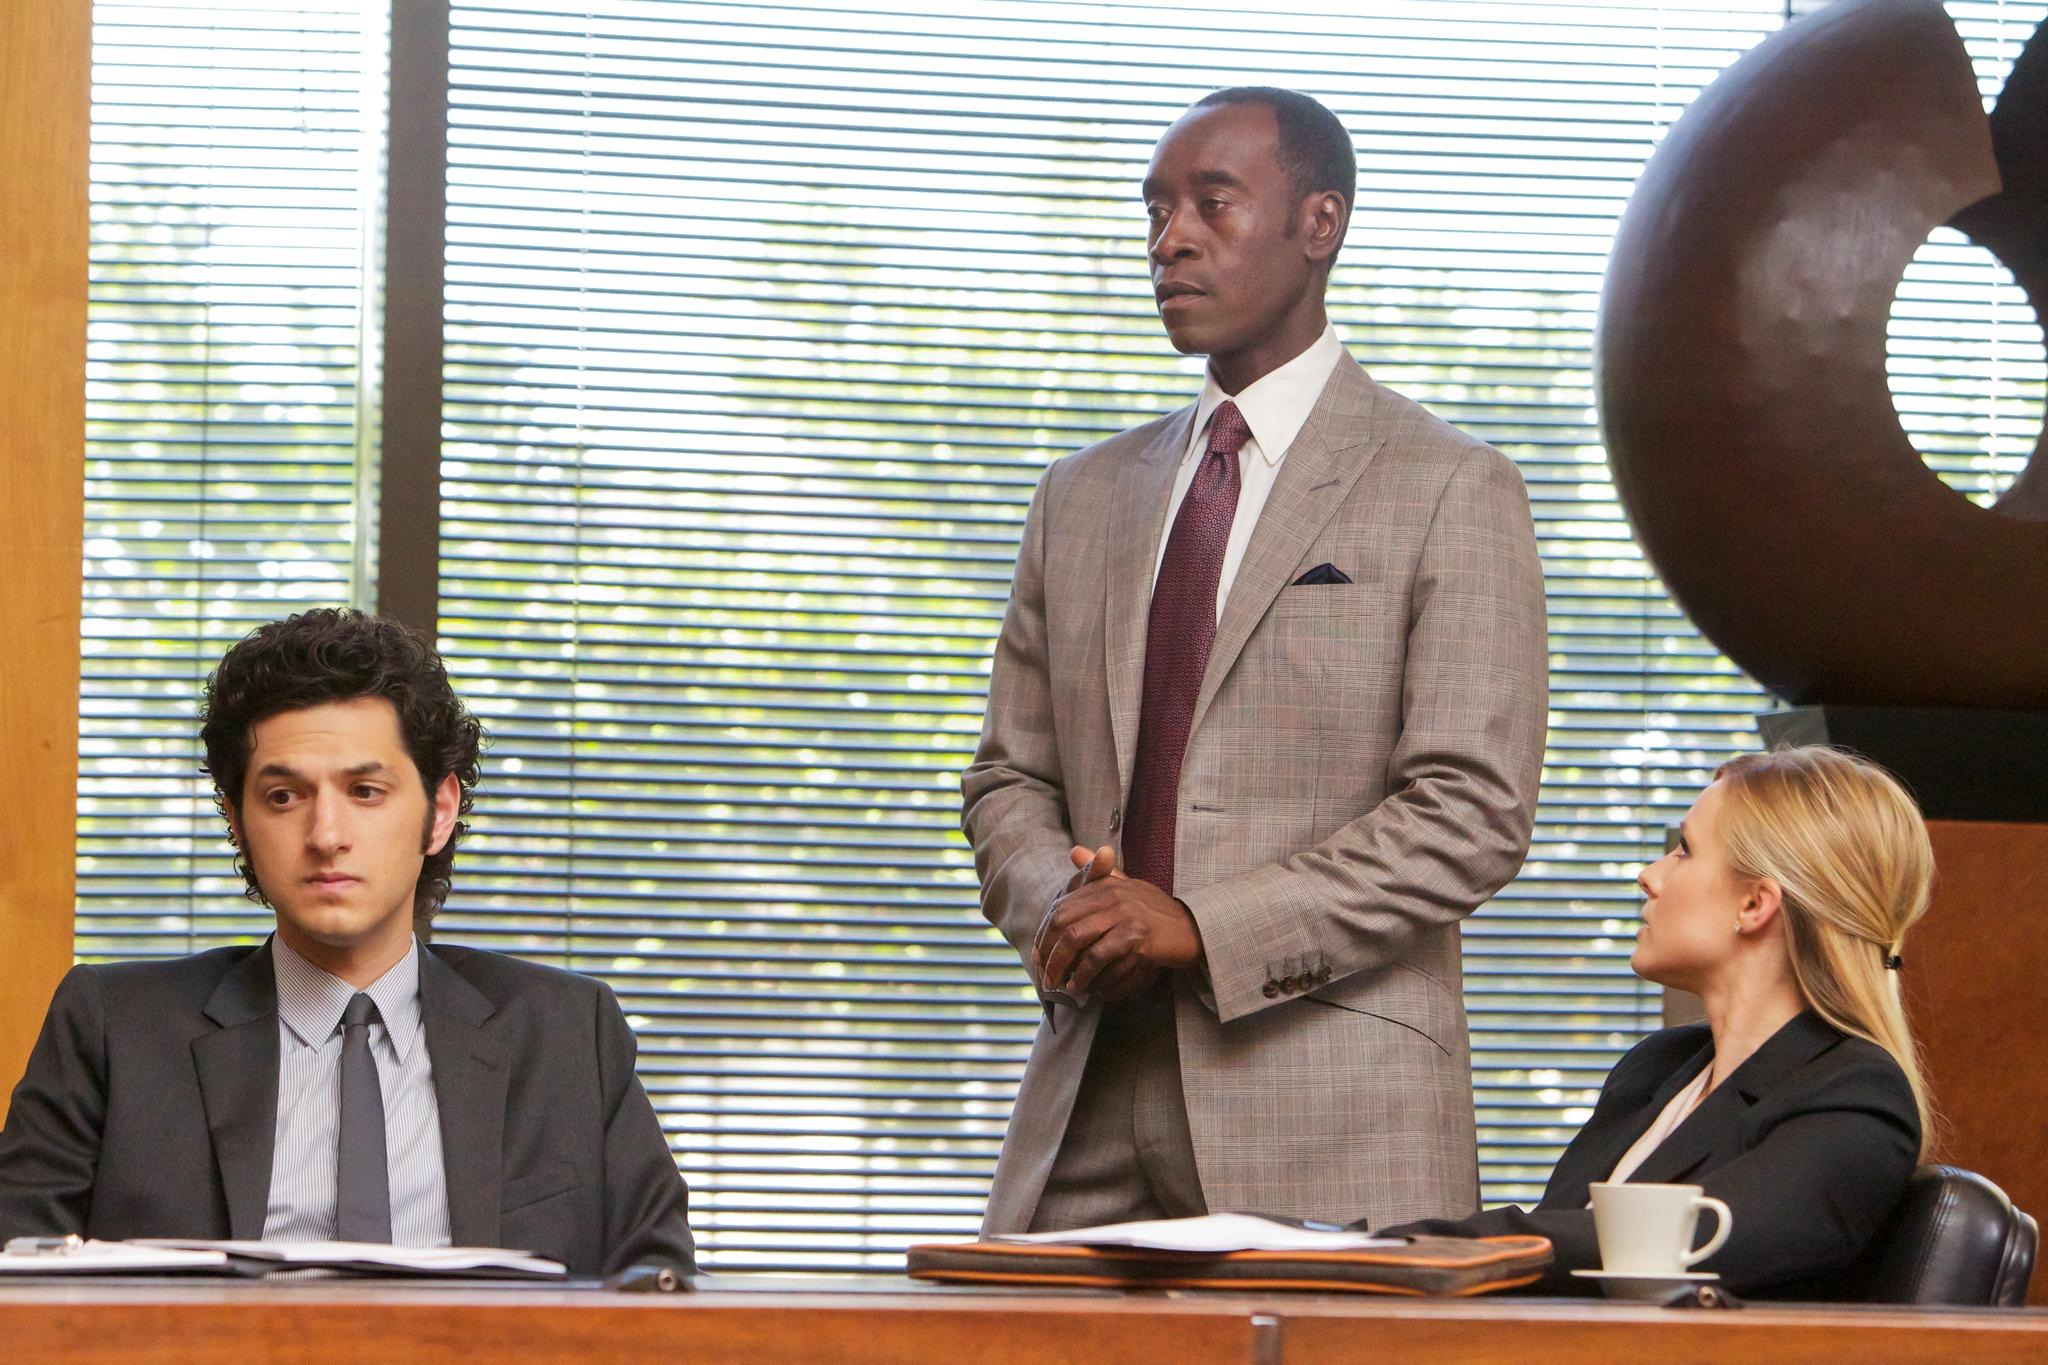 housepicture-of-don-cheadle-kristen-bell-and-ben-schwartz-in-house-of-lies-large-picture